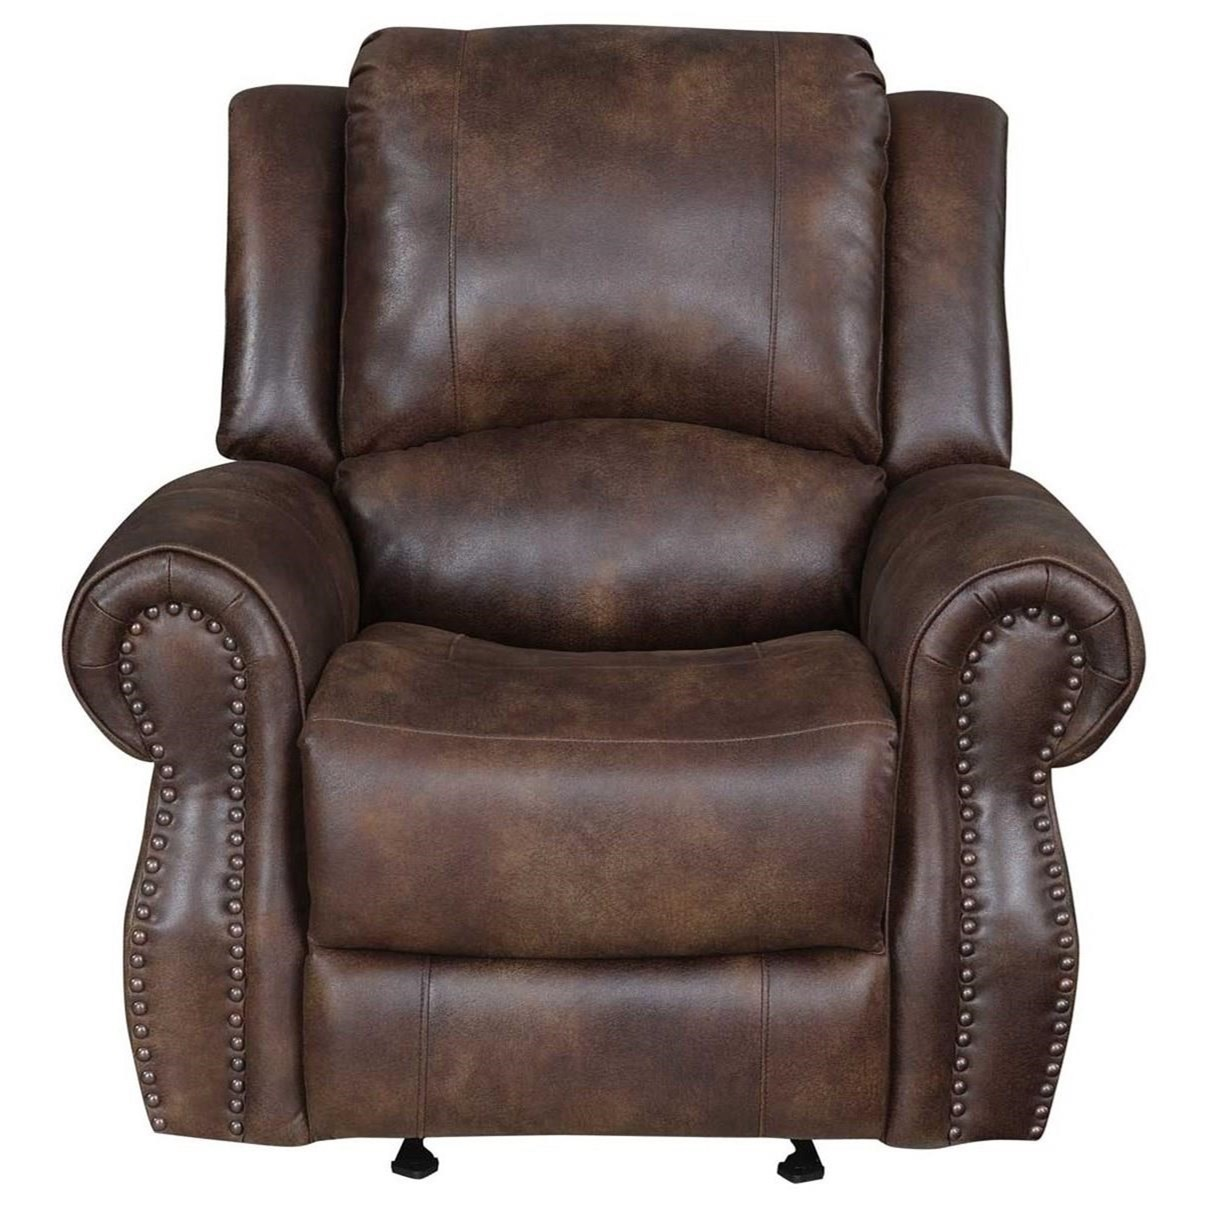 Navarro Manual Recliner Chair by Steve Silver at A1 Furniture & Mattress